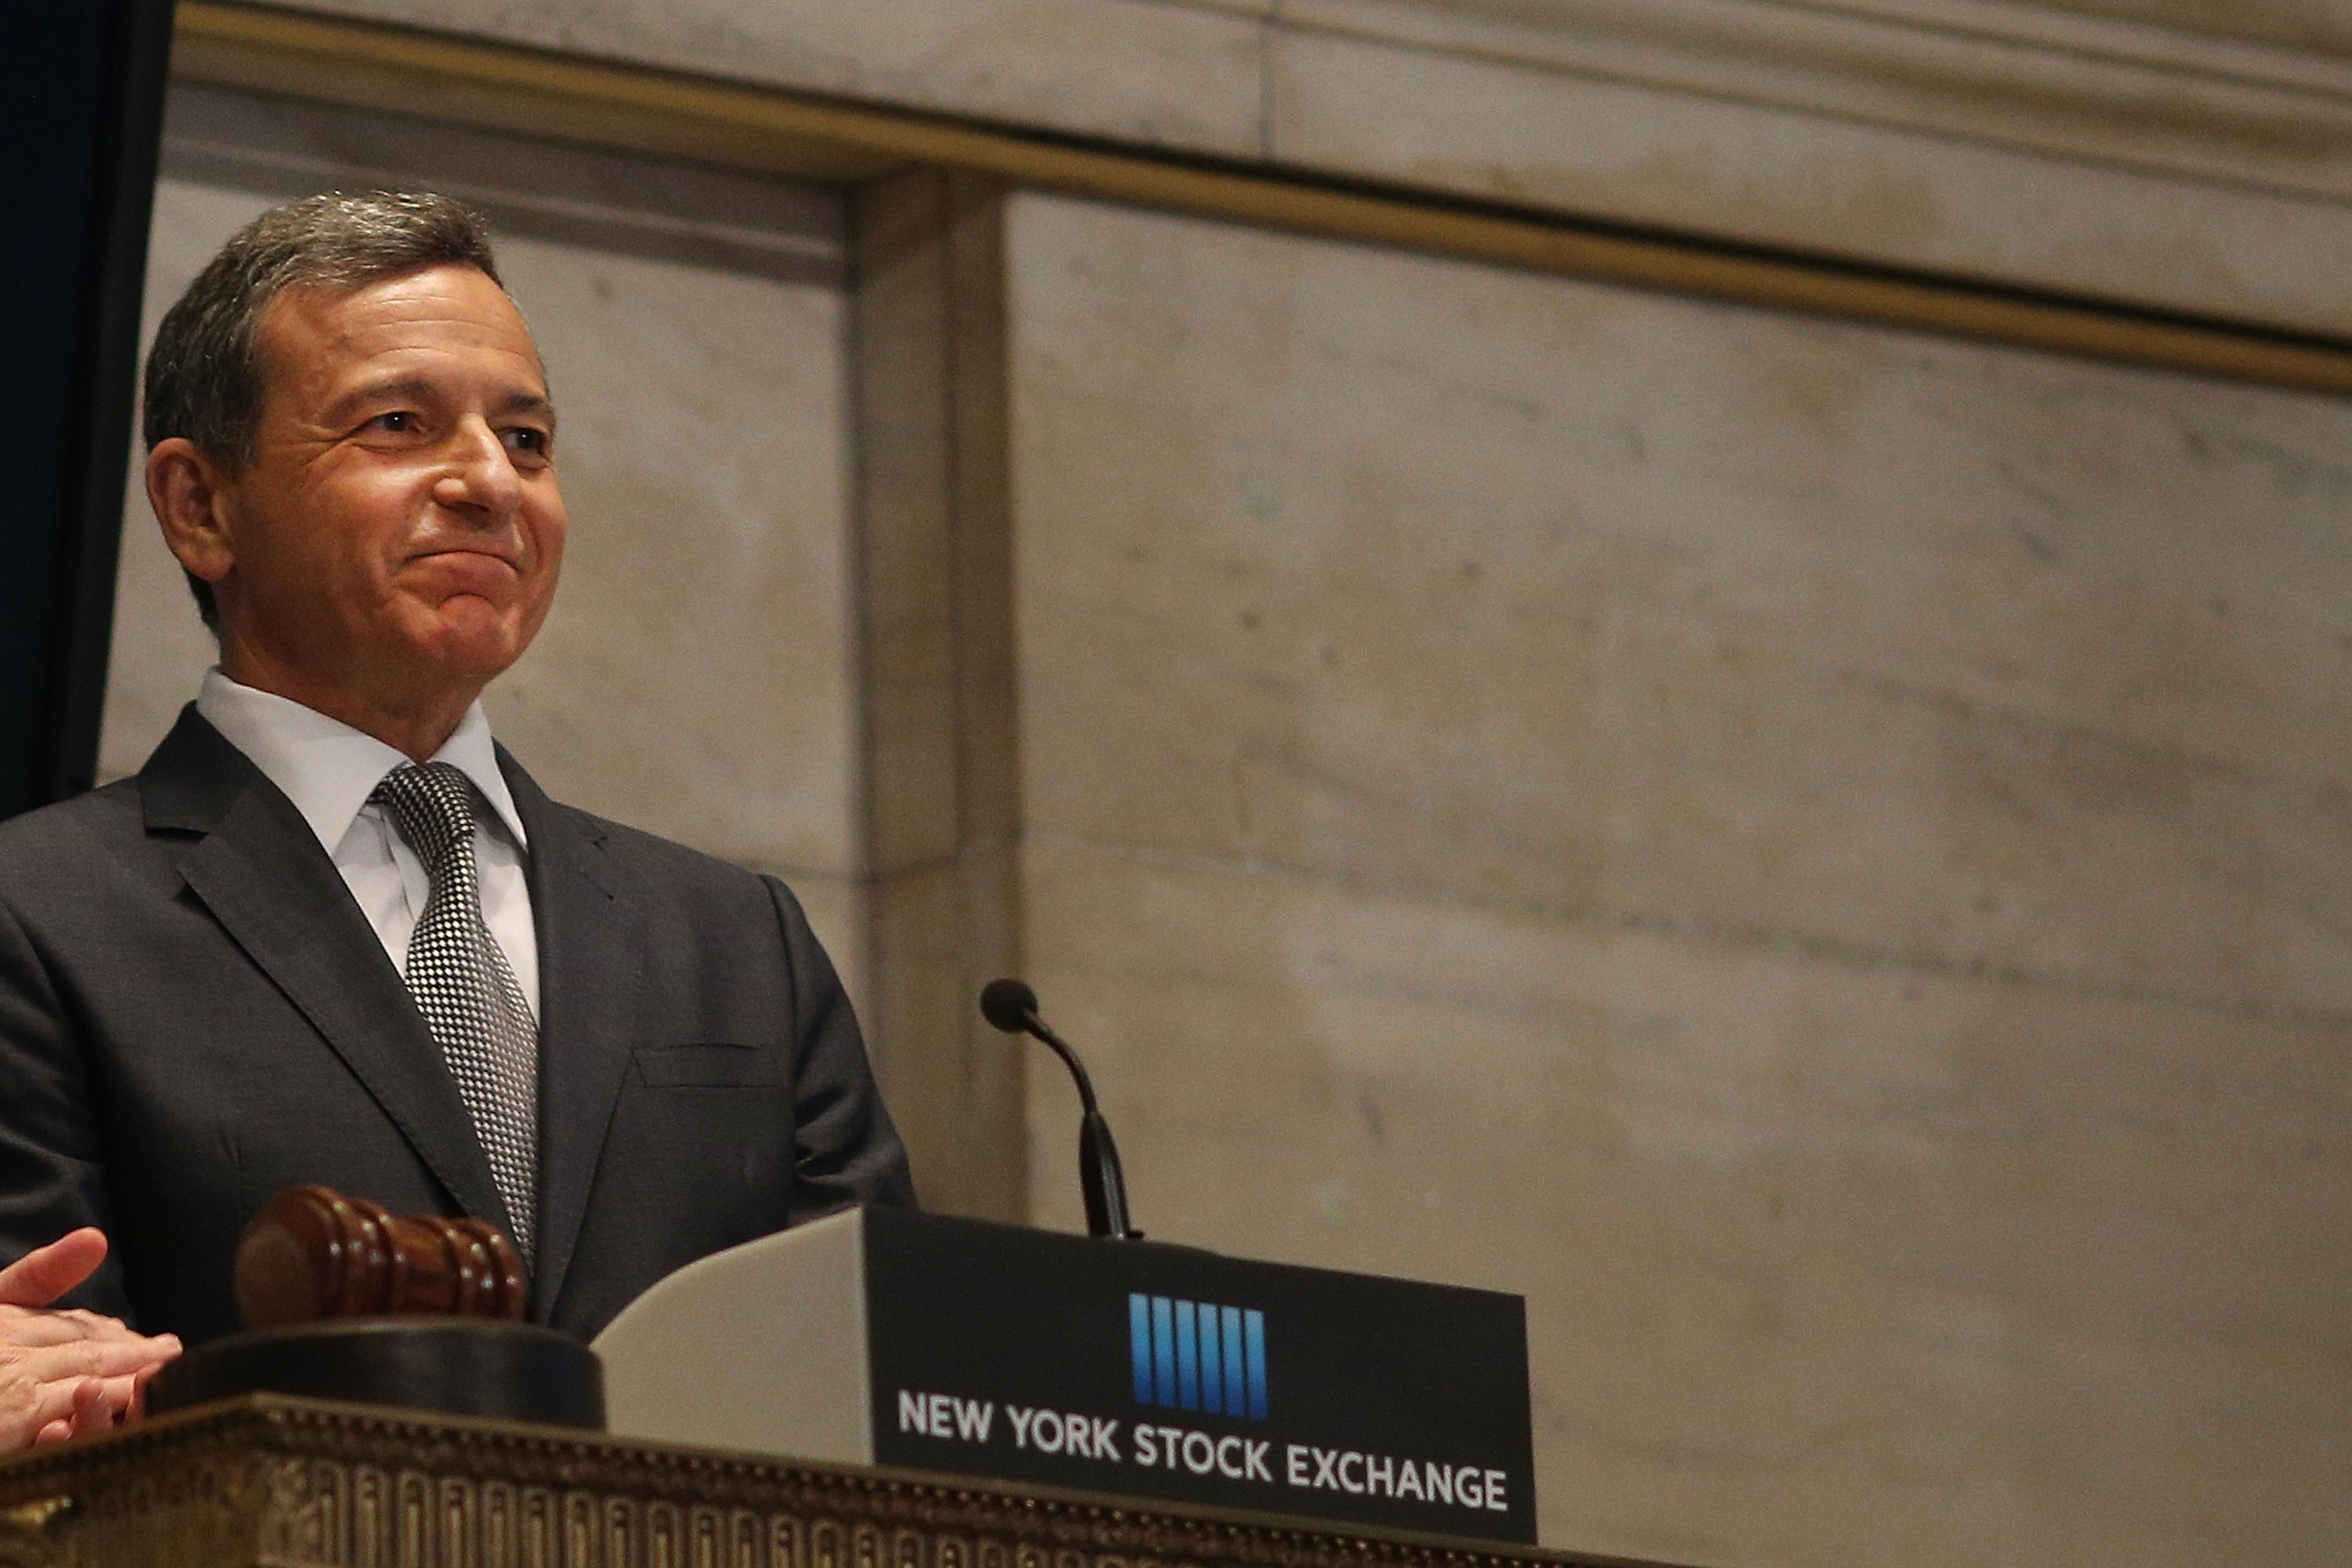 Disney CEO Bob Iger Rings Closing Bell At New York Stock Exchange